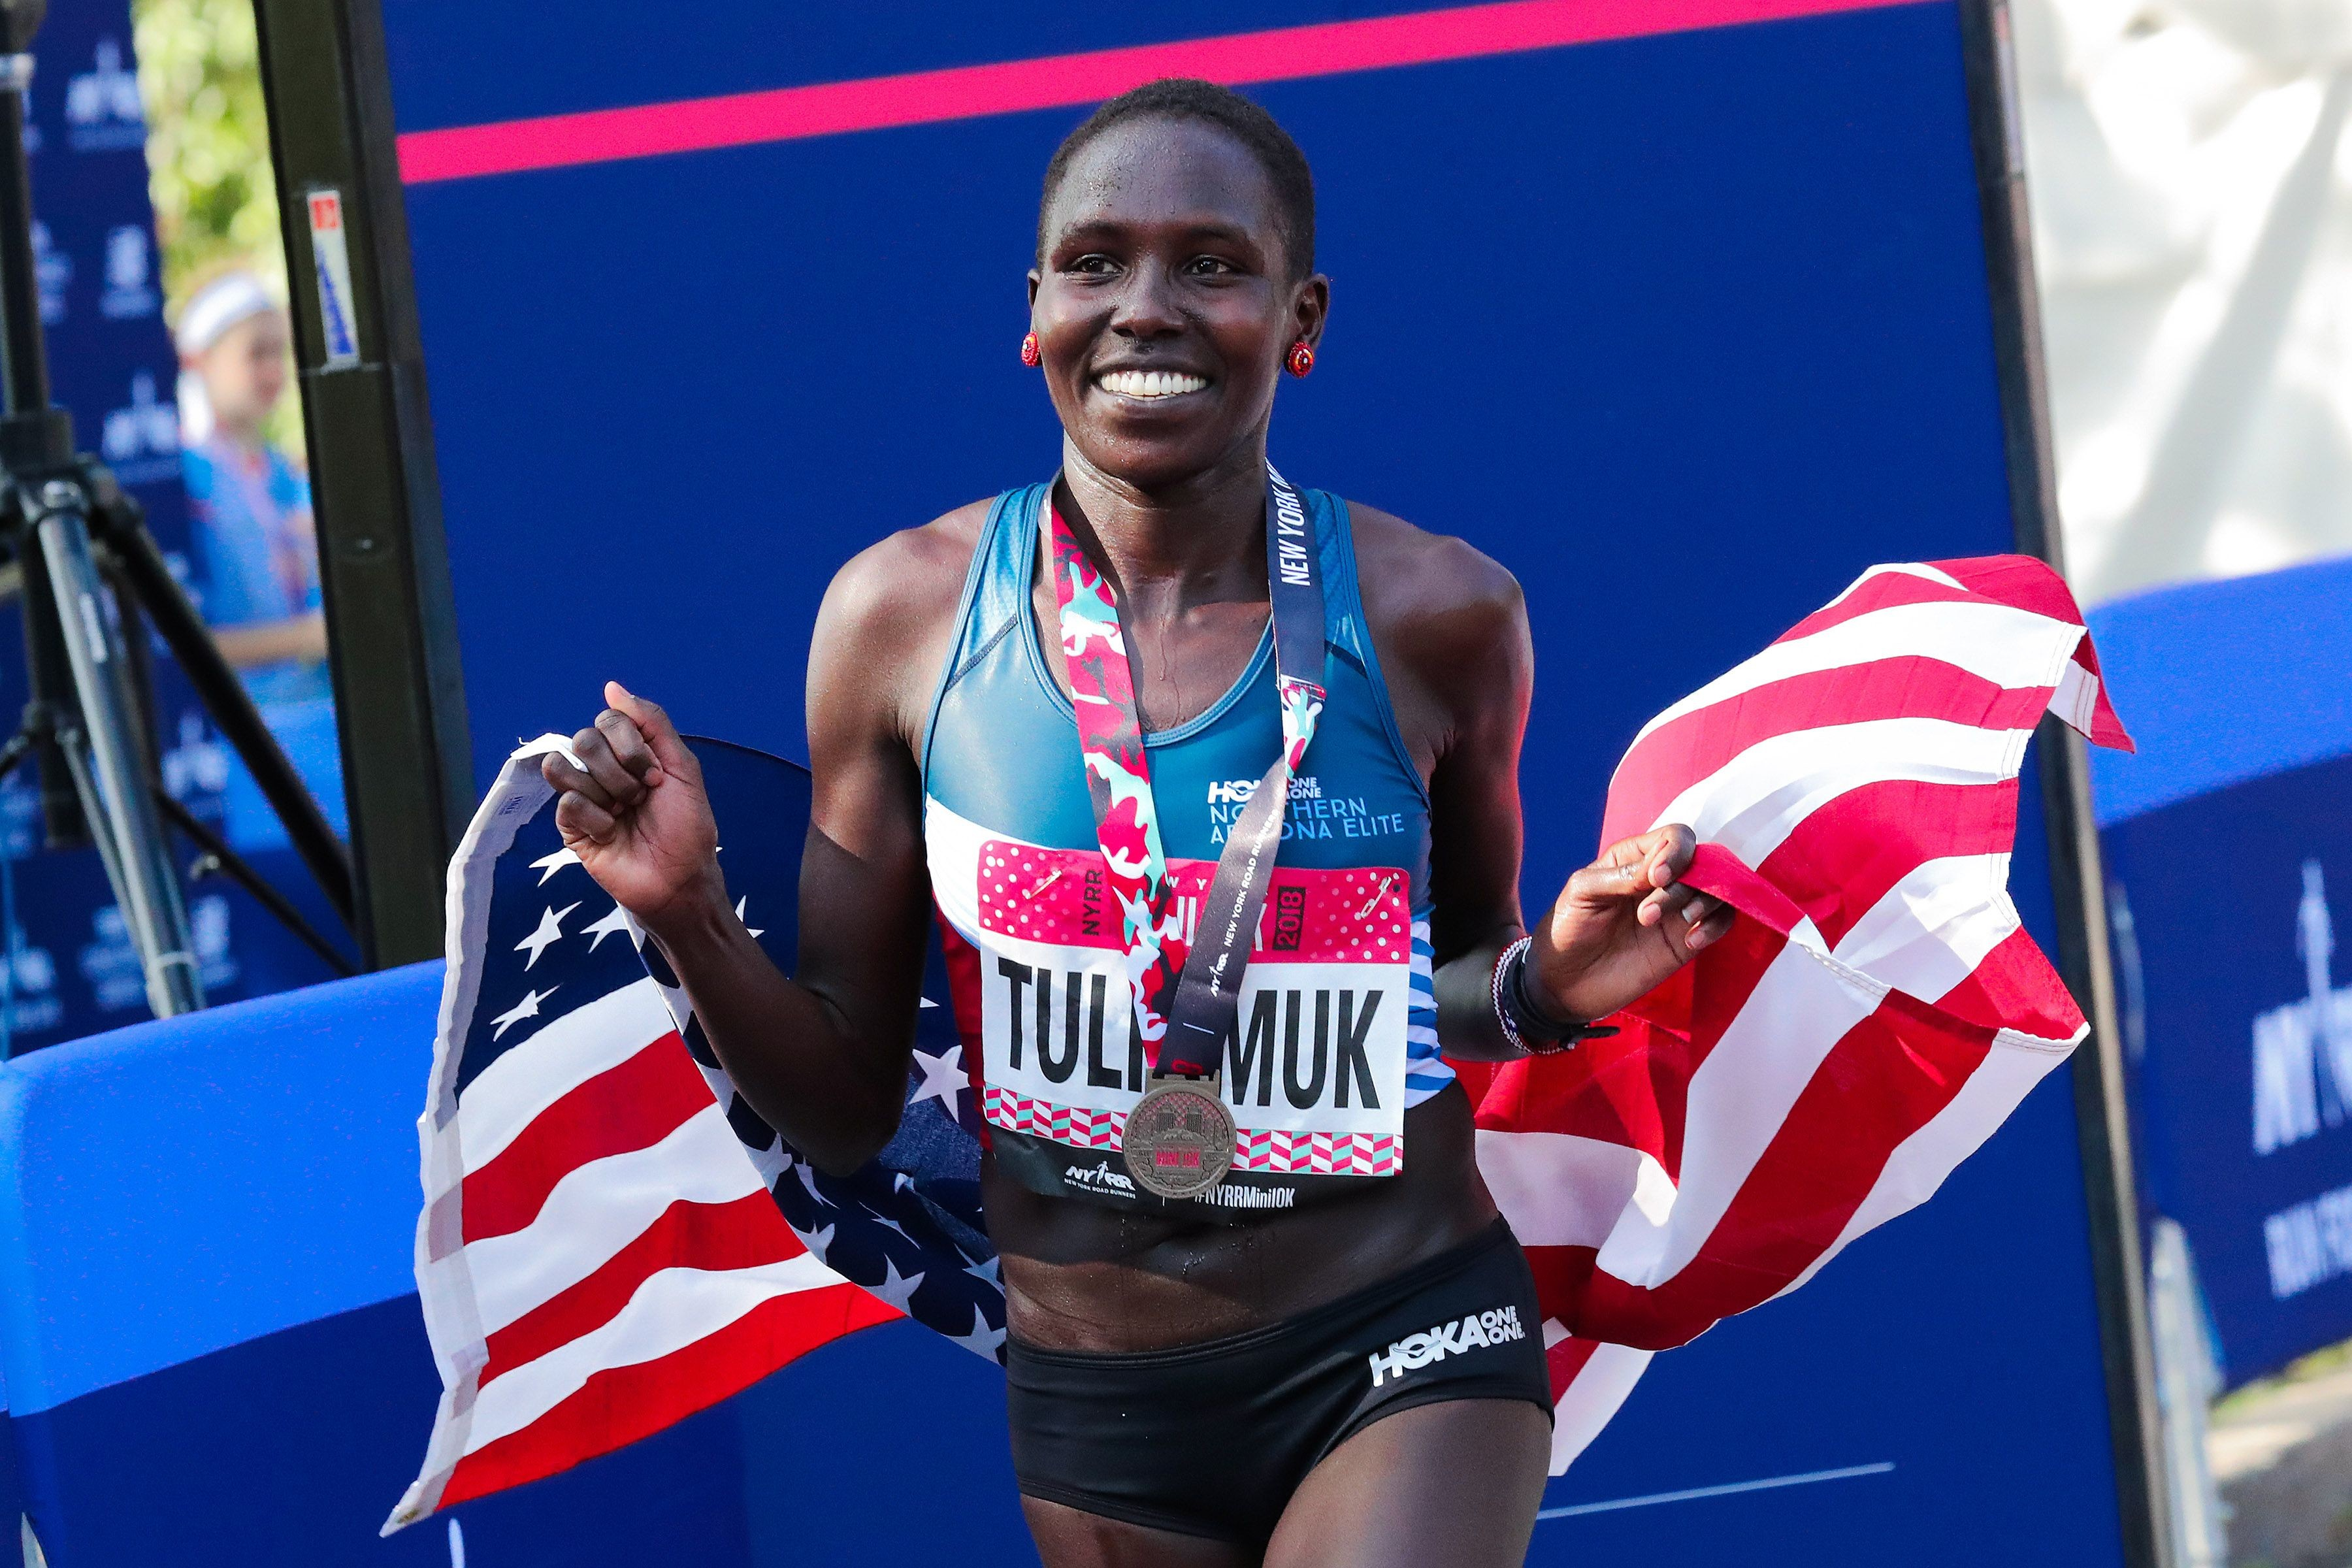 Aliphine Tuliamuk represents the American dream and she hopes she caps that dream by making the 2020 US Olympic Team